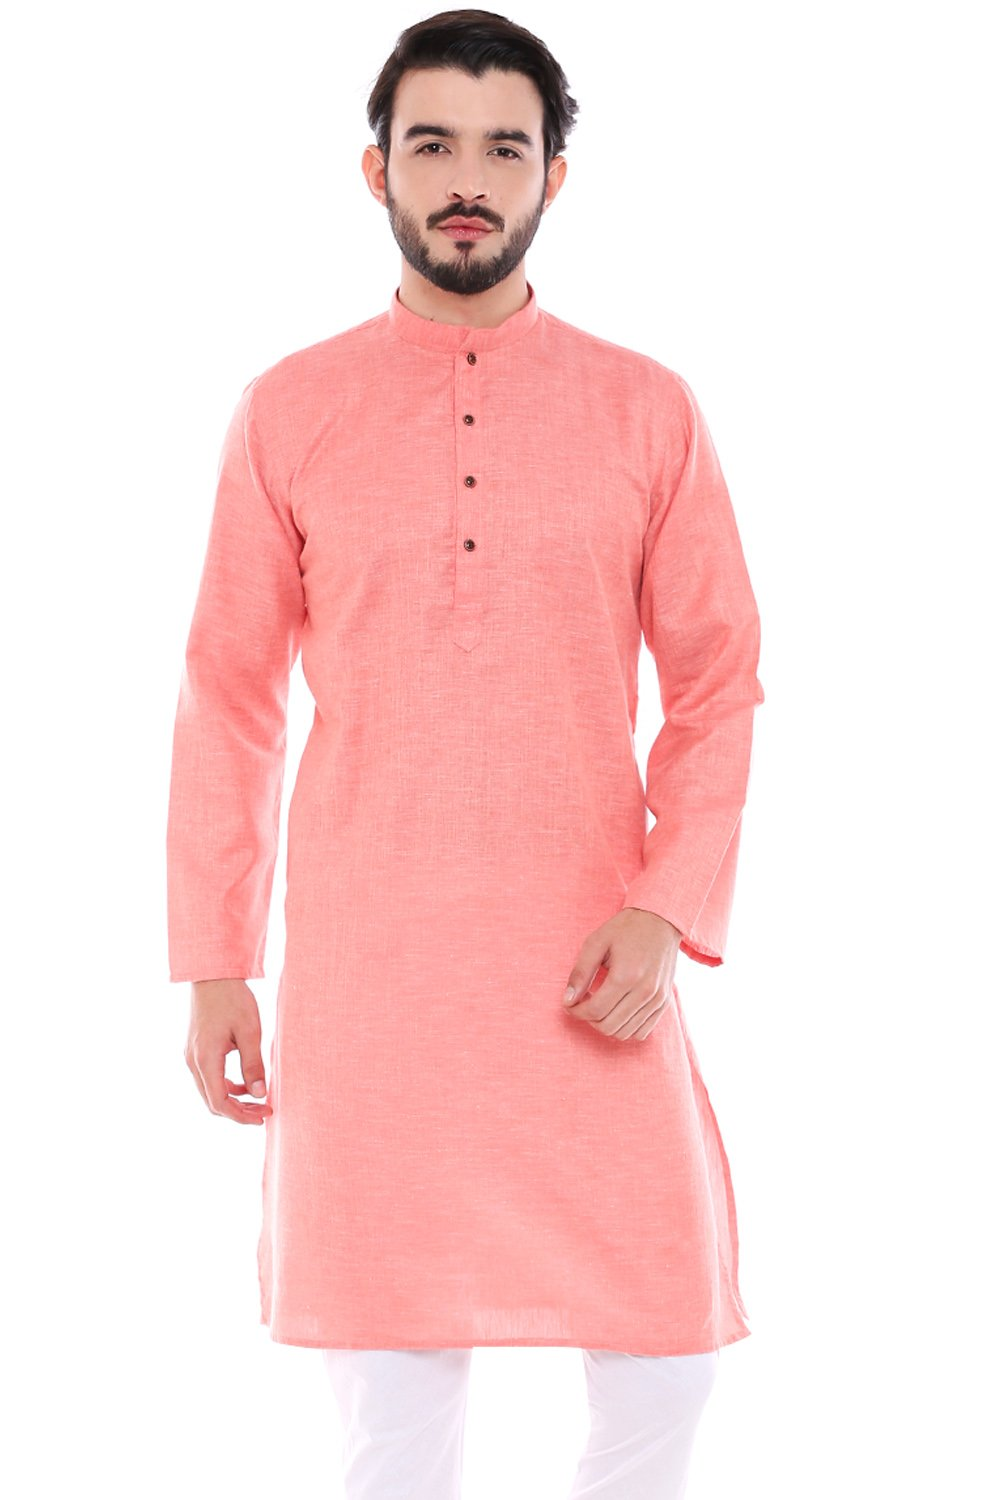 In-Sattva Men's Indian Classic Textured Pure Cotton Kurta Tunic with Band Collar; Coral; MD